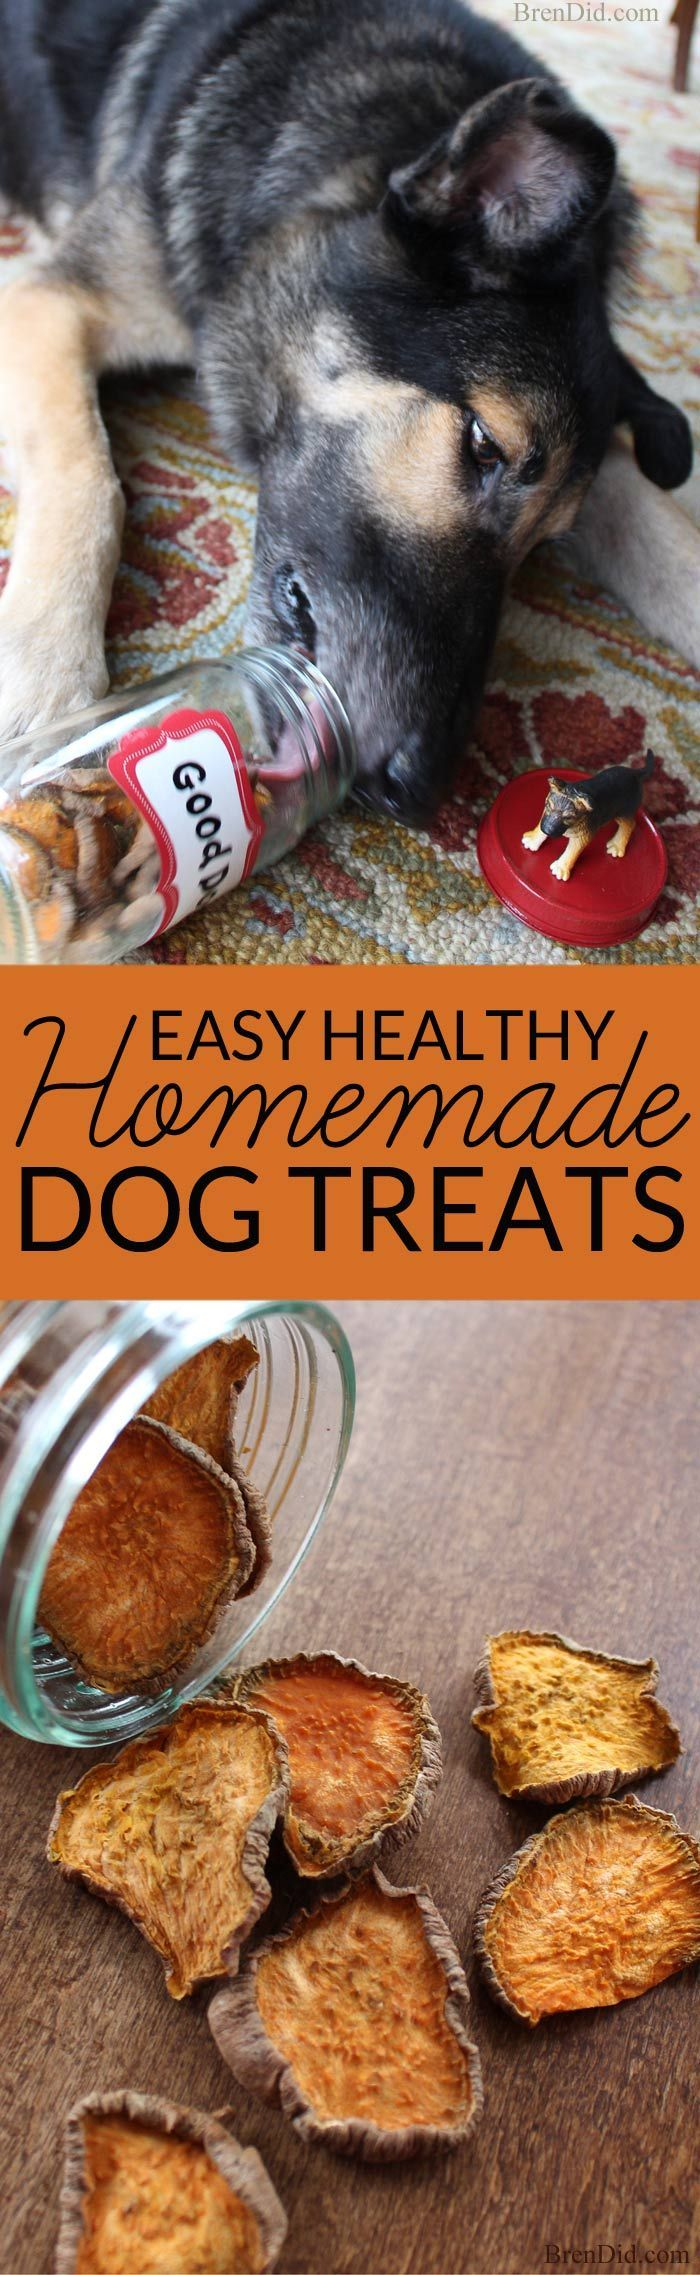 Commercial dog treats can be full of corn or other questionable ingredients. Make your own easy homemade dog treats with this one ingredient tutorial and feed your pet healthy homemade dog treats. #dogs #healthy #pets